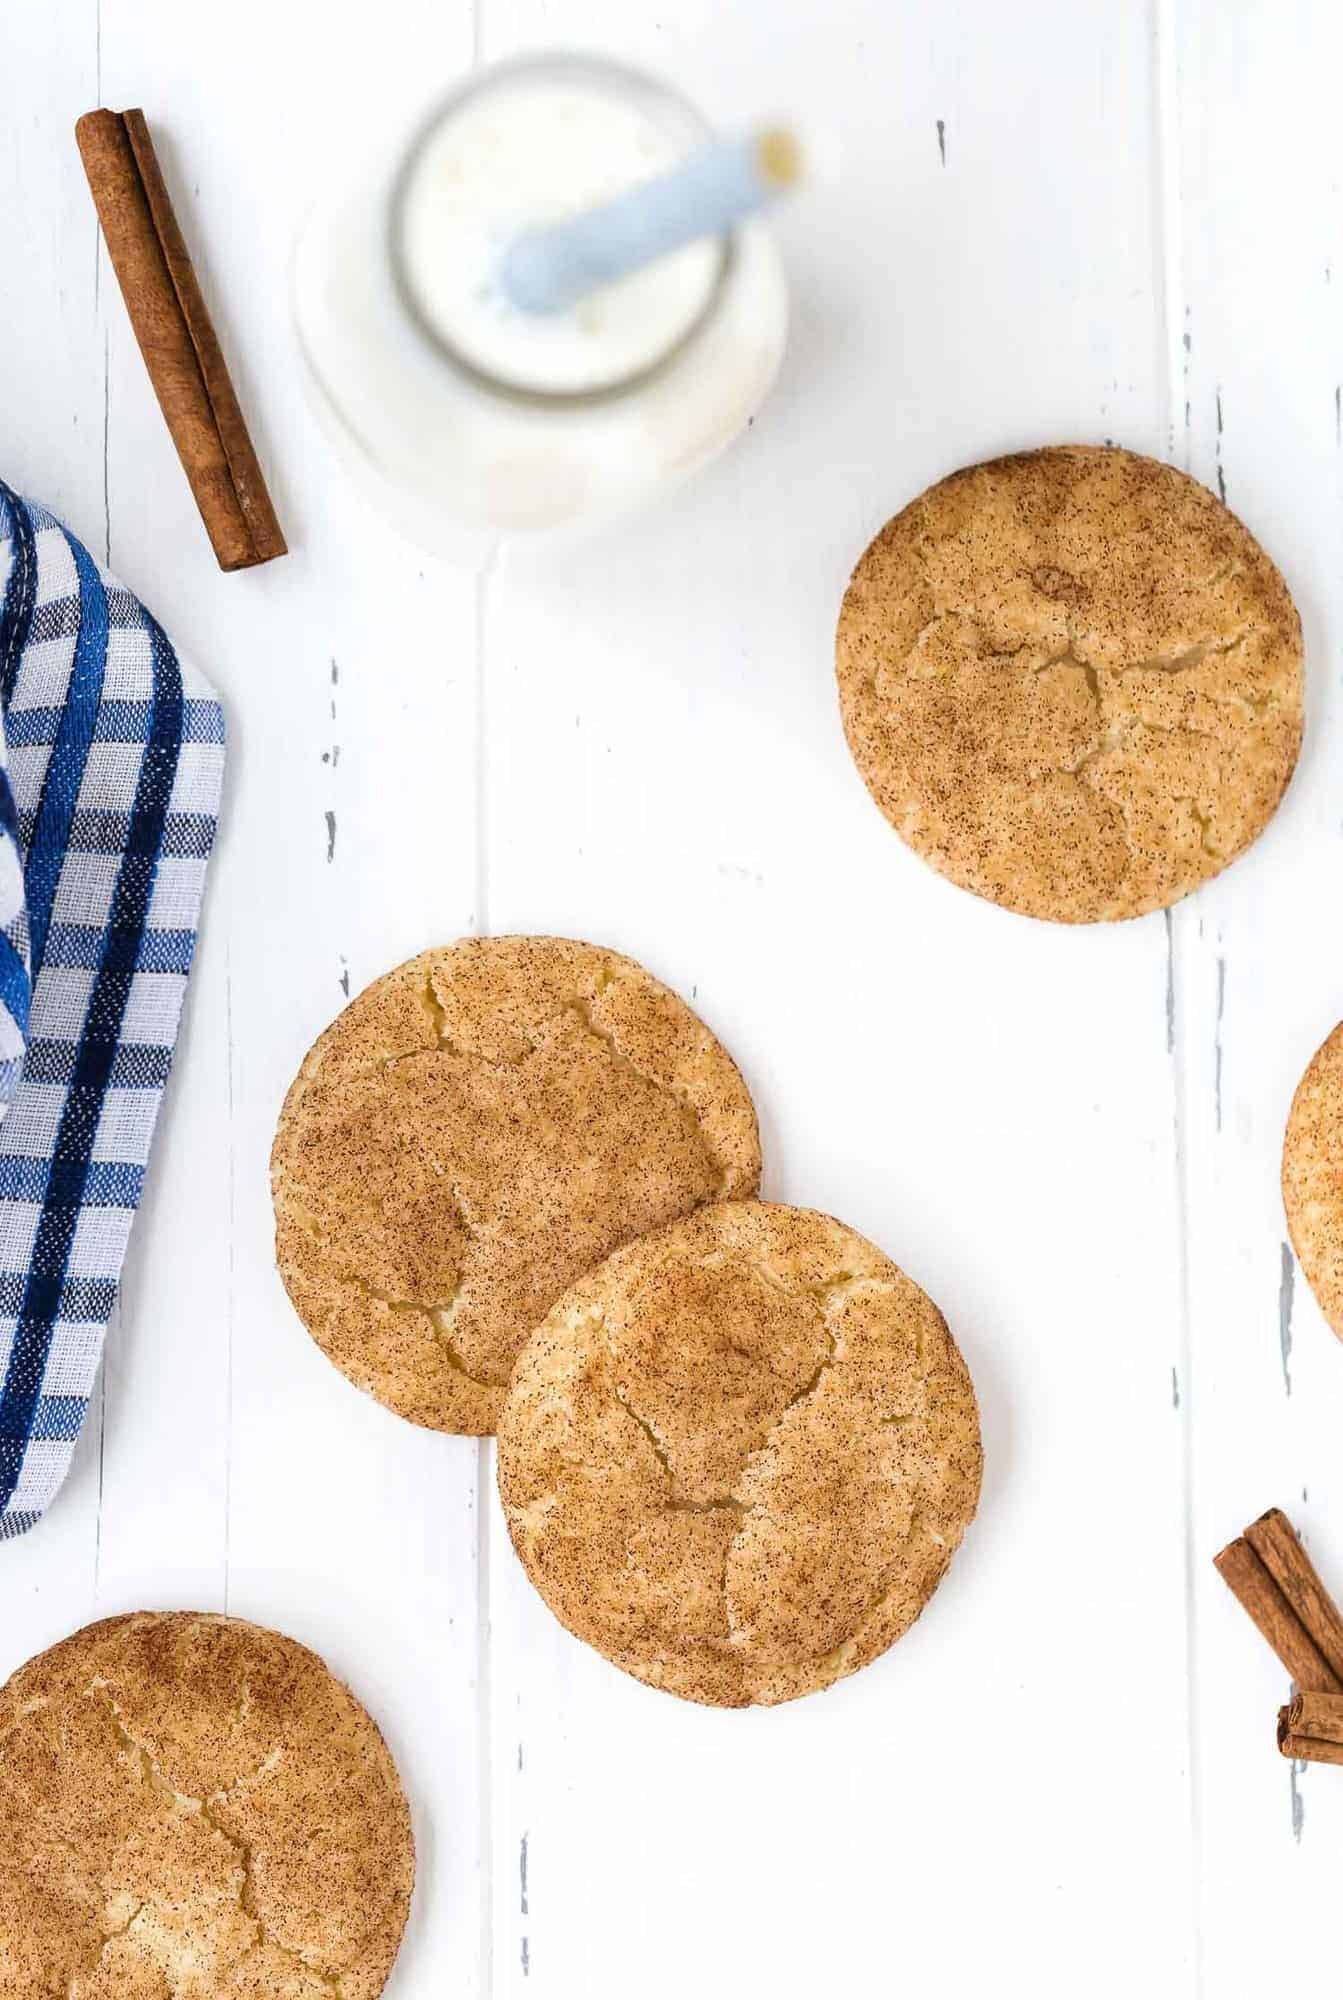 Overhead view of cinnamon cookies on a white surface with cinnamon sticks and milk.